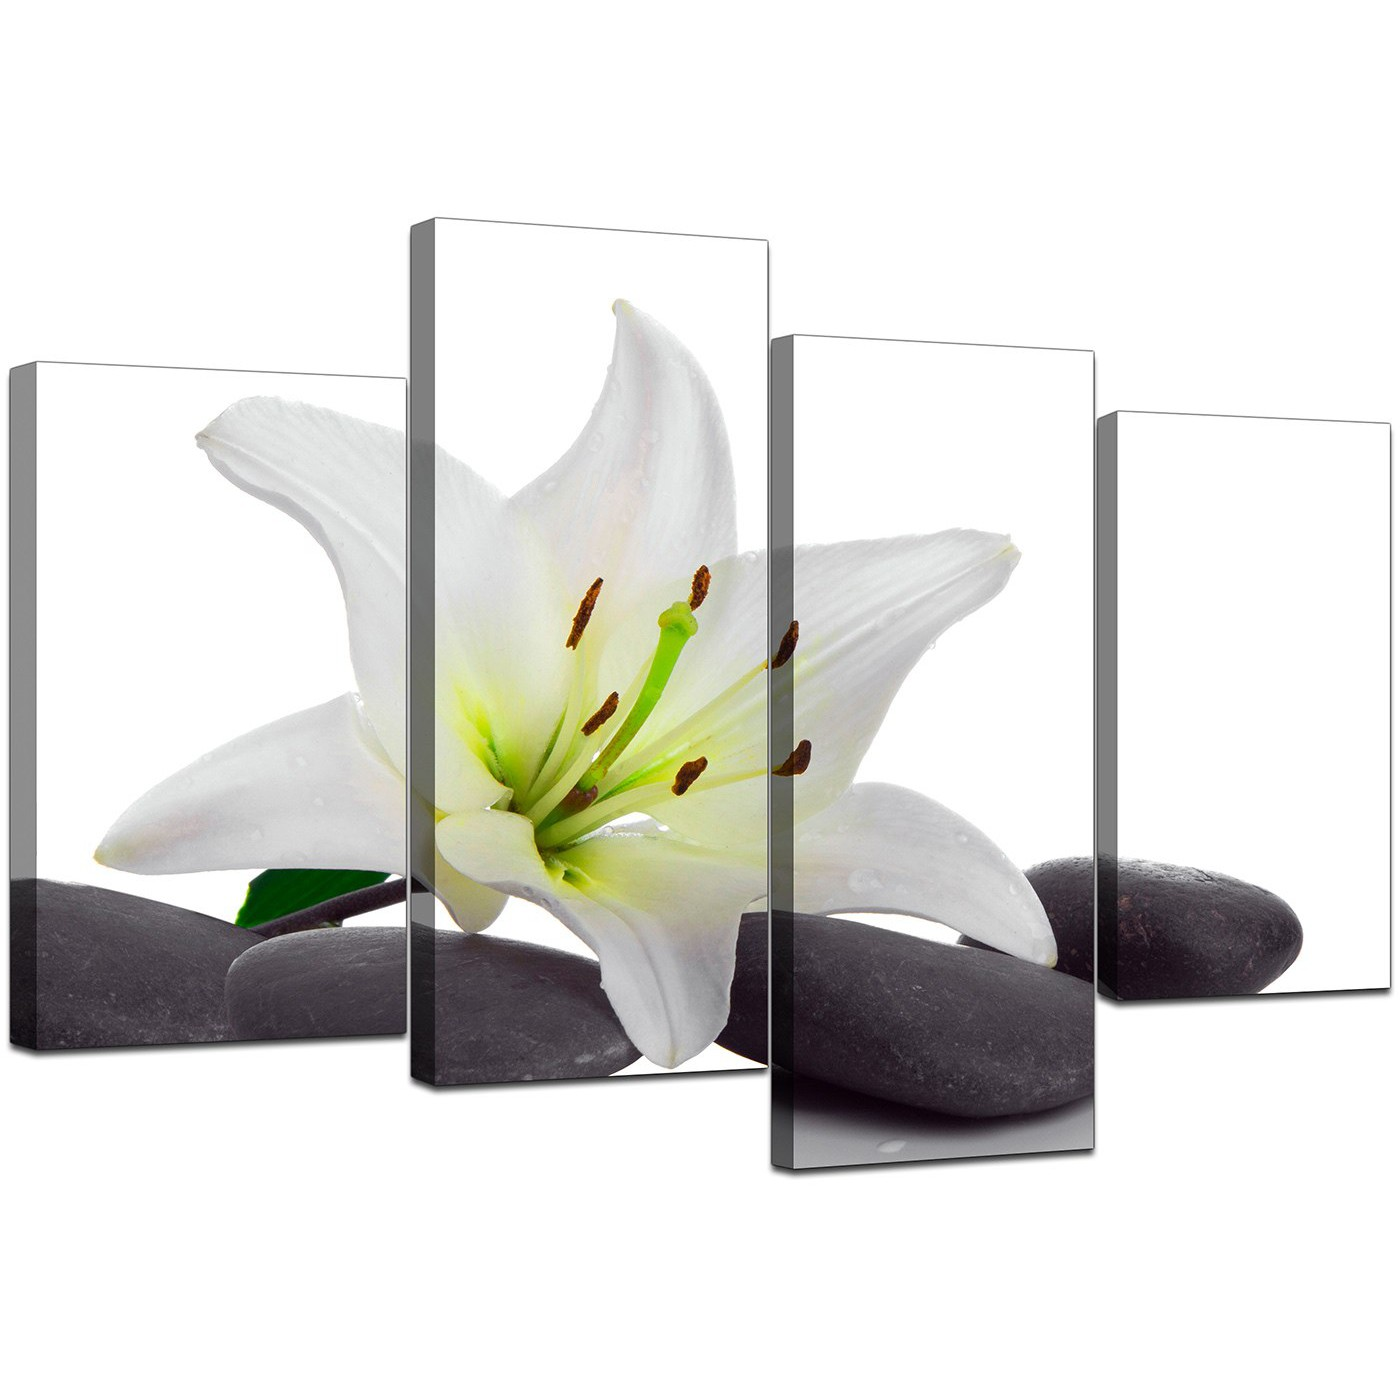 Floral canvas prints of white lily flowers for bedroom display gallery item 5 4 part set of modern black white canvas art display gallery item 6 izmirmasajfo